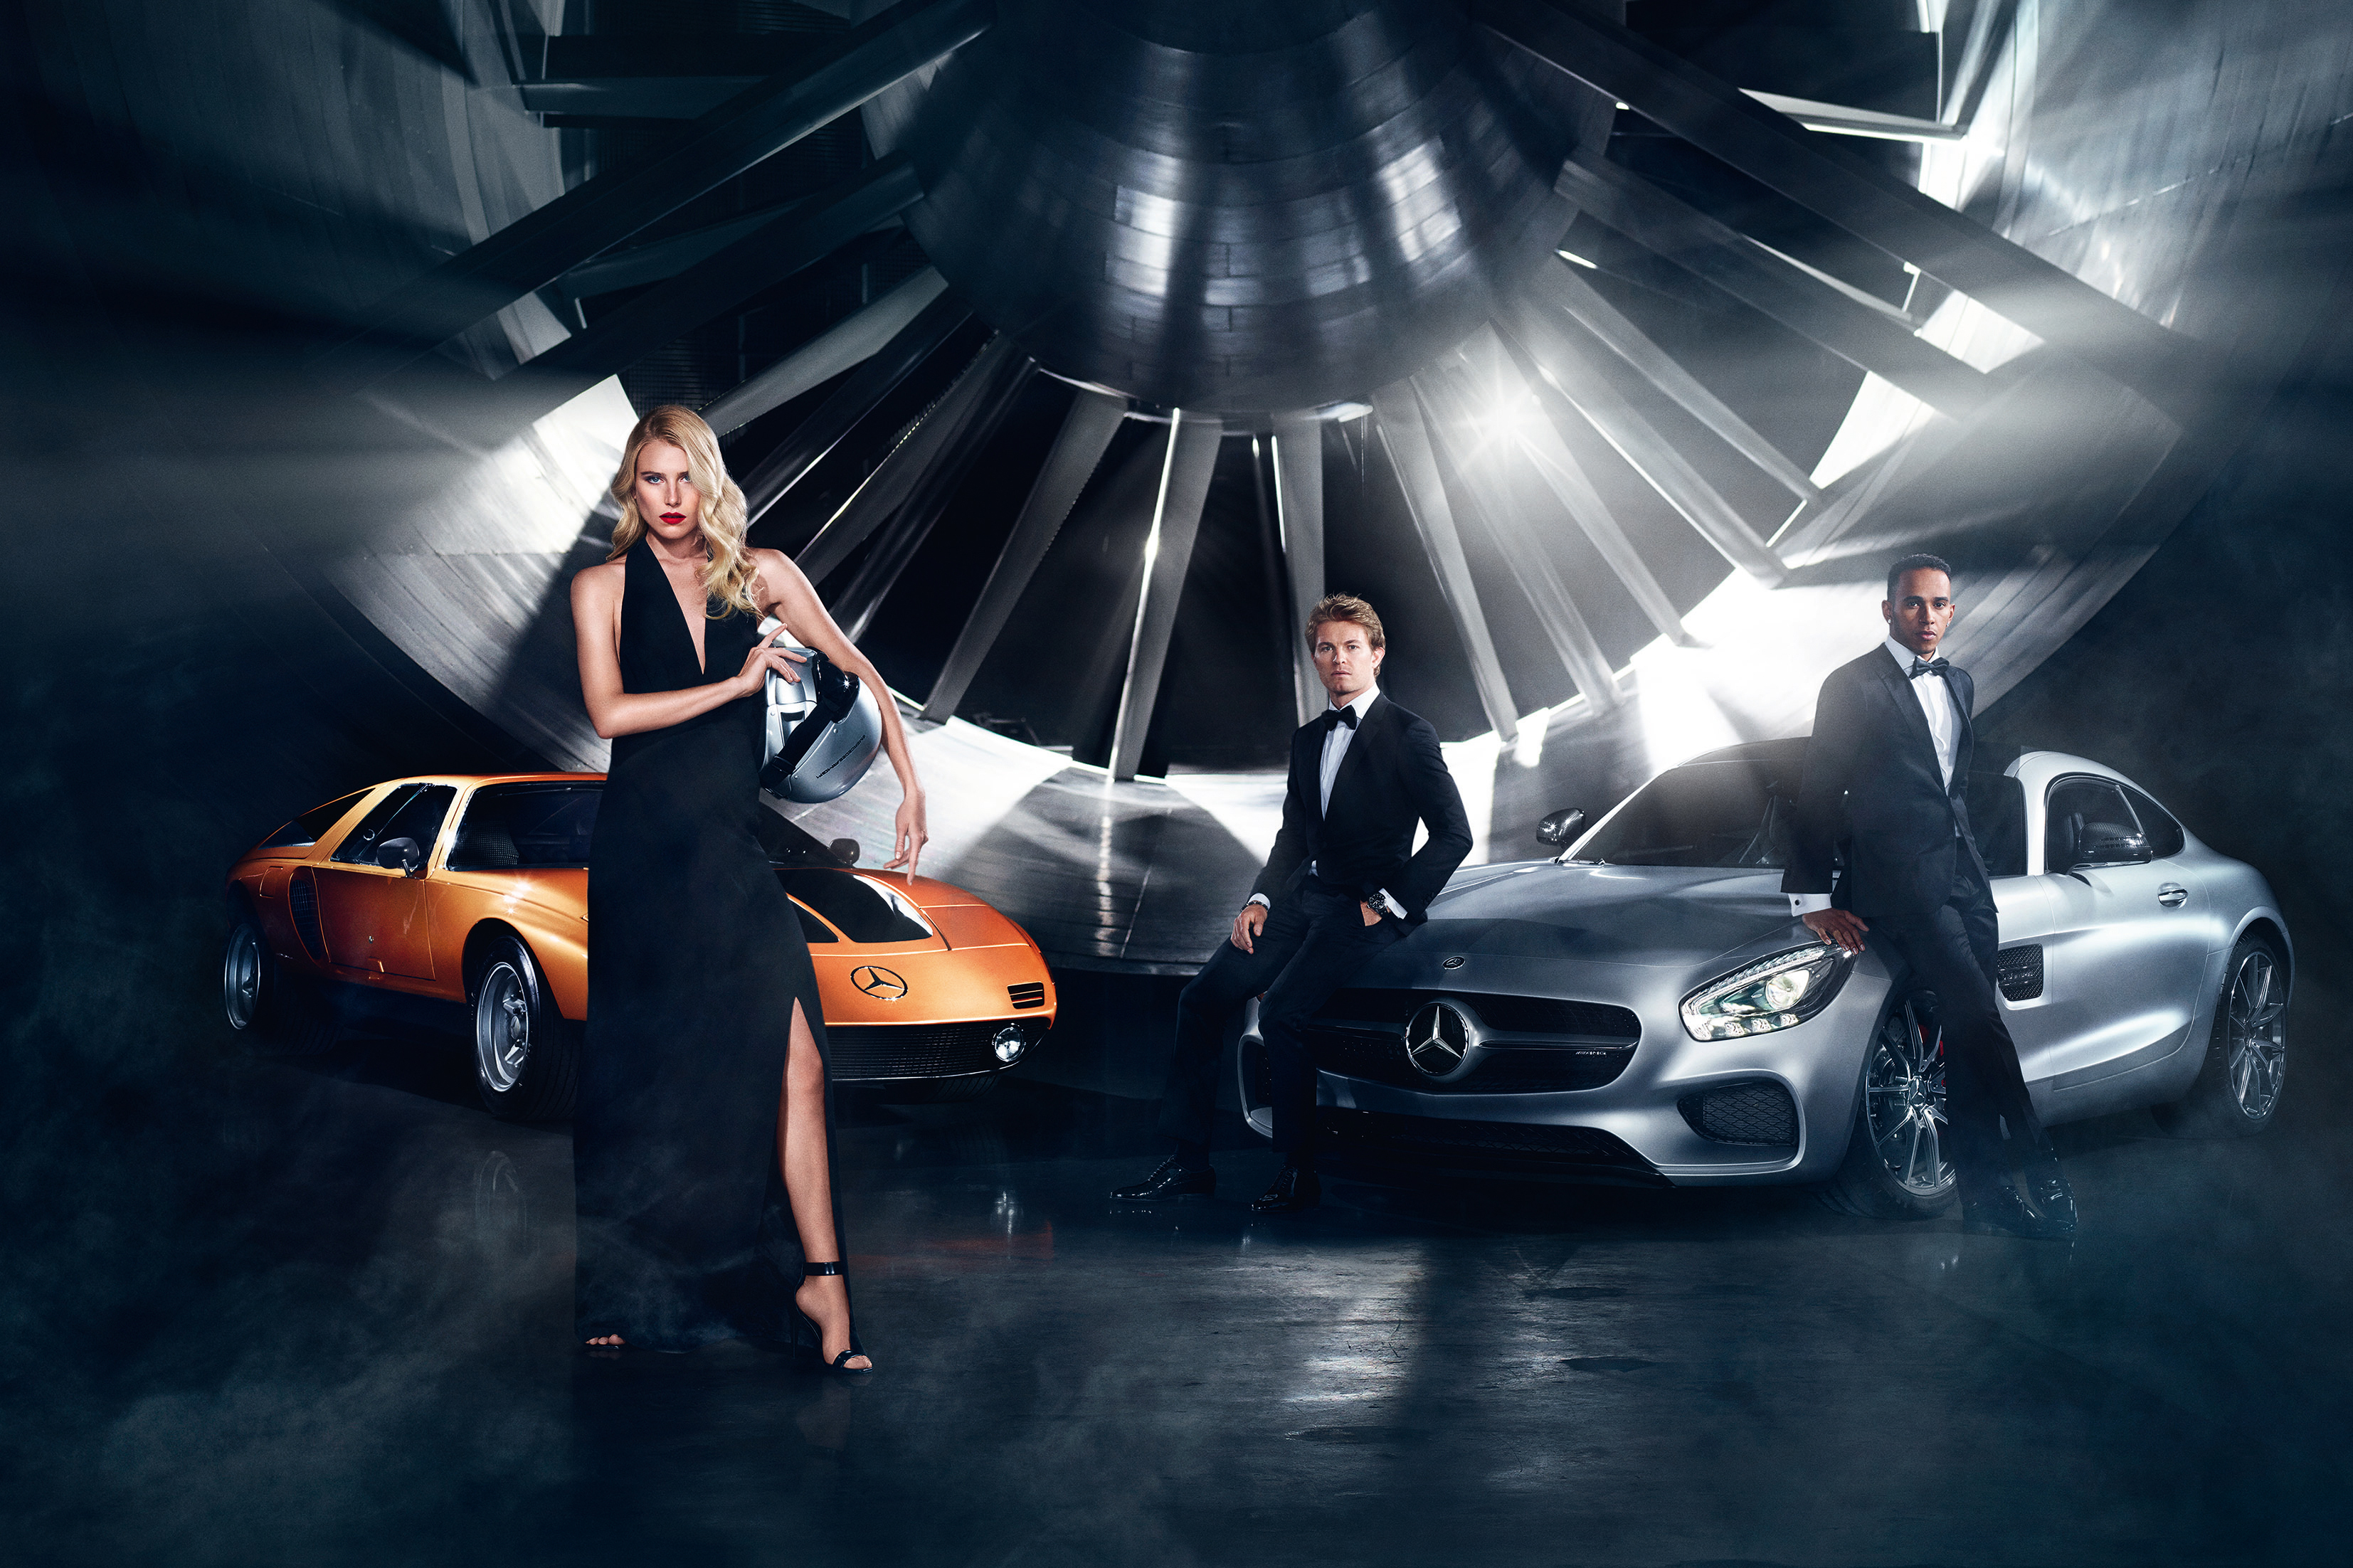 Fall-Winter 2015 campaign by Mercedes-Benz